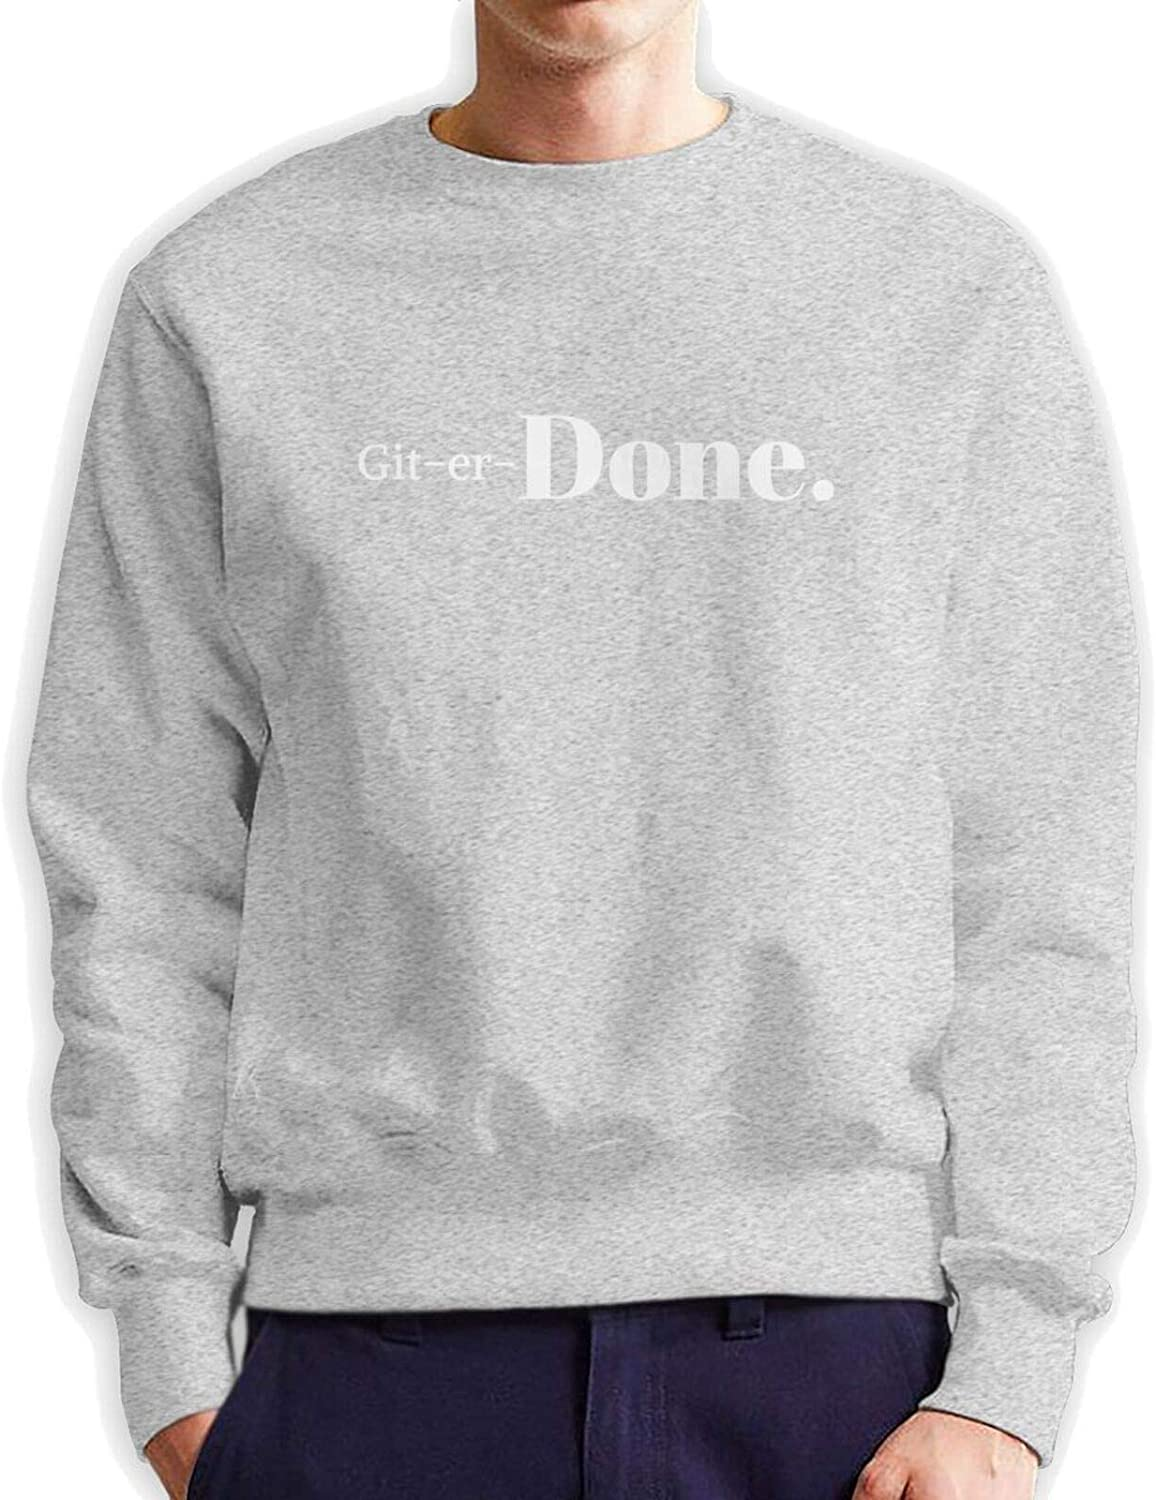 Get Er Done Man Hoodie Sweater Hooded Albuquerque Mall Authentic Cotton New products world's highest quality popular